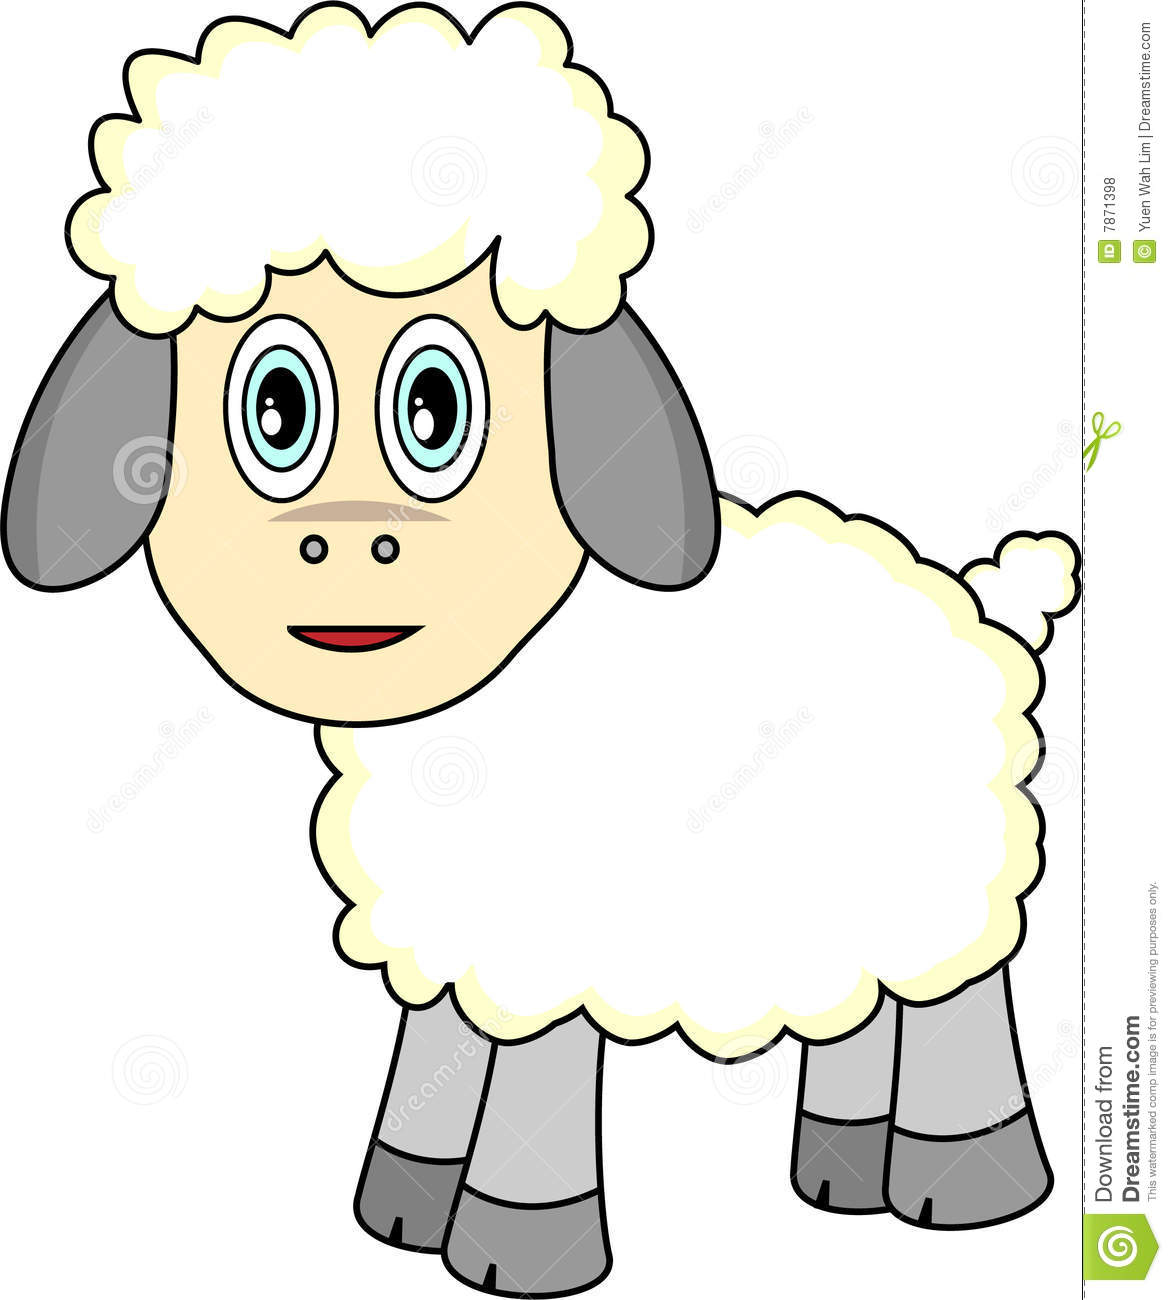 Cute Sheep Drawing Tumblr Cute Cartoon Sheep Stock Vector Illustration Of Clip